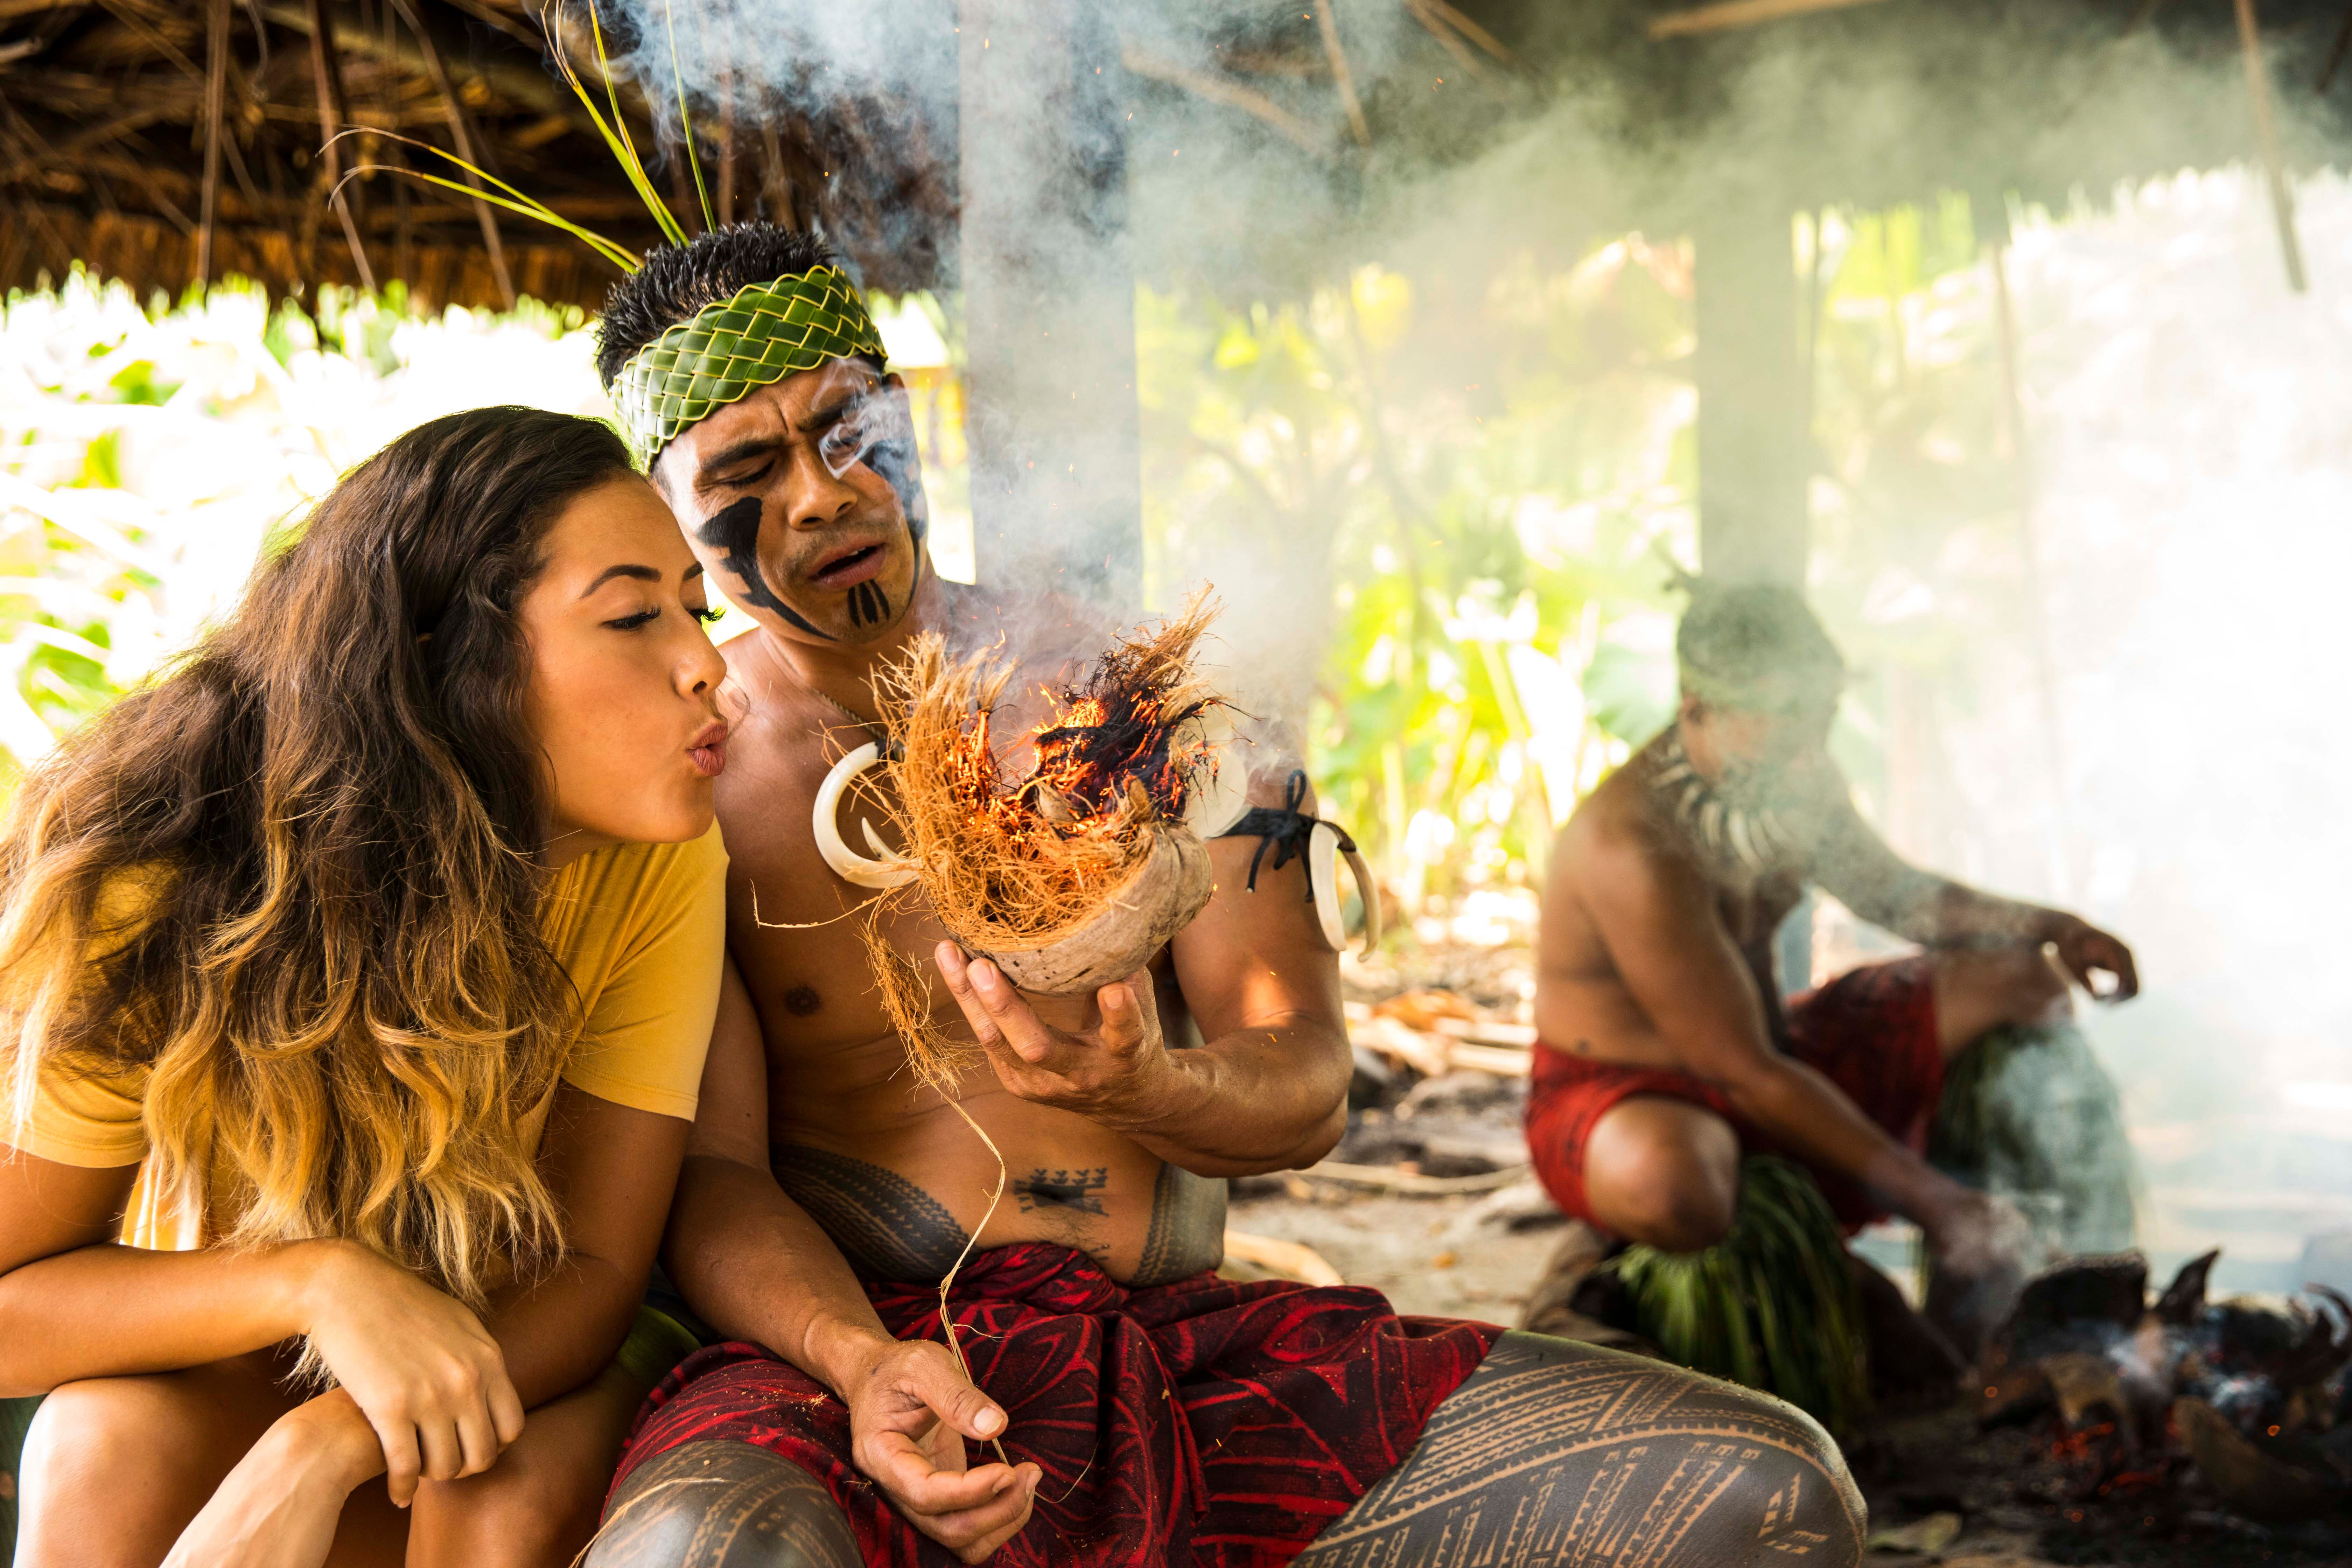 A one-of-a-kind hands-on Polynesian cooking experience